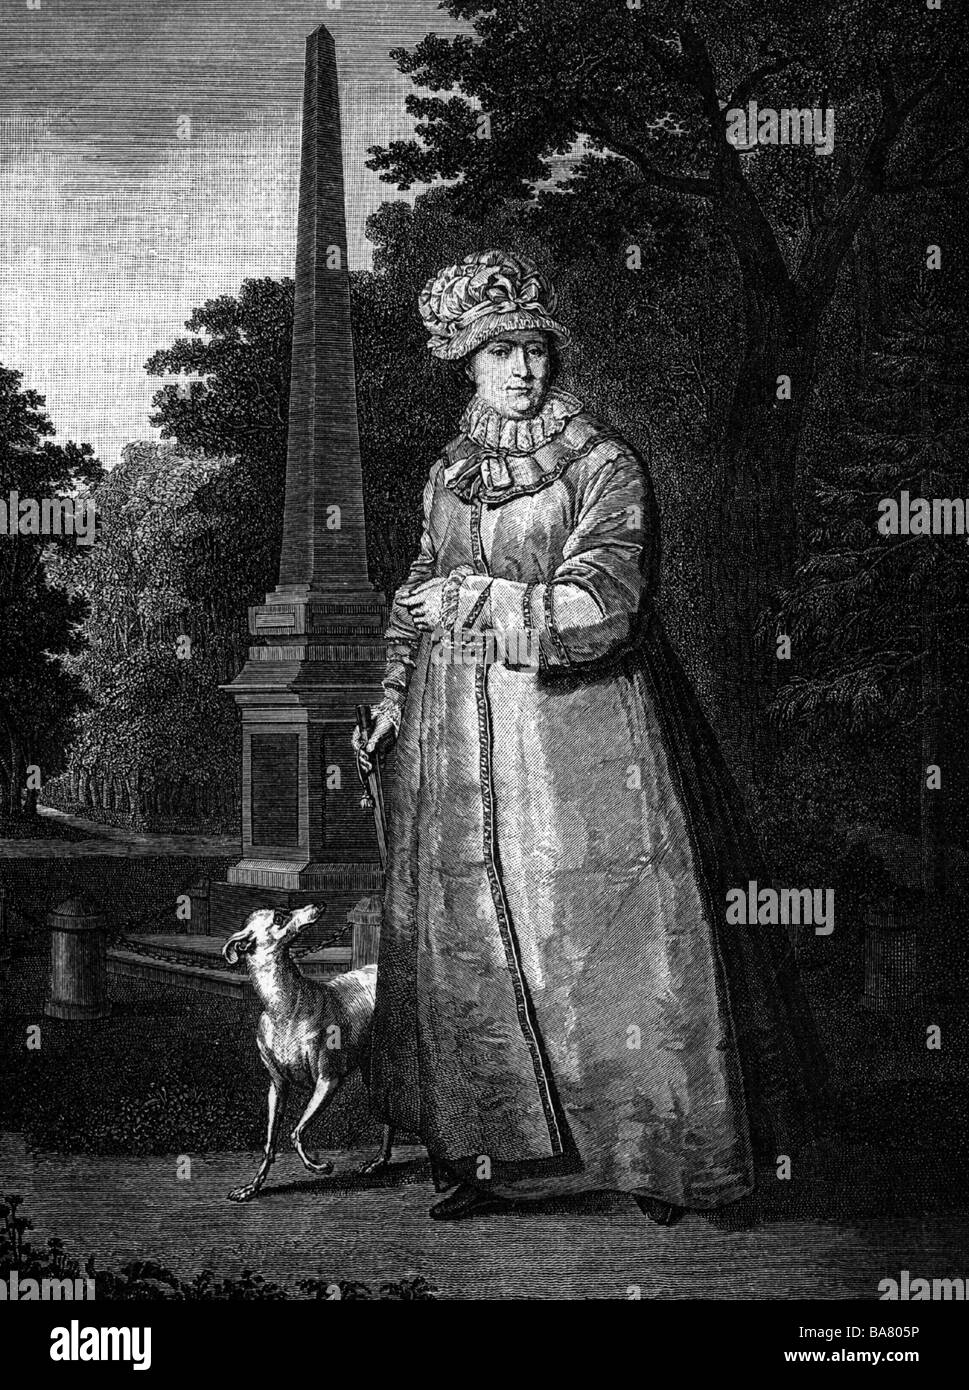 "Catherine II ""the Great"", 2.5.1729 - 17.11.1796, Empress of Russia 1762 - 1796, full length, with dog in the park, Stock Photo"